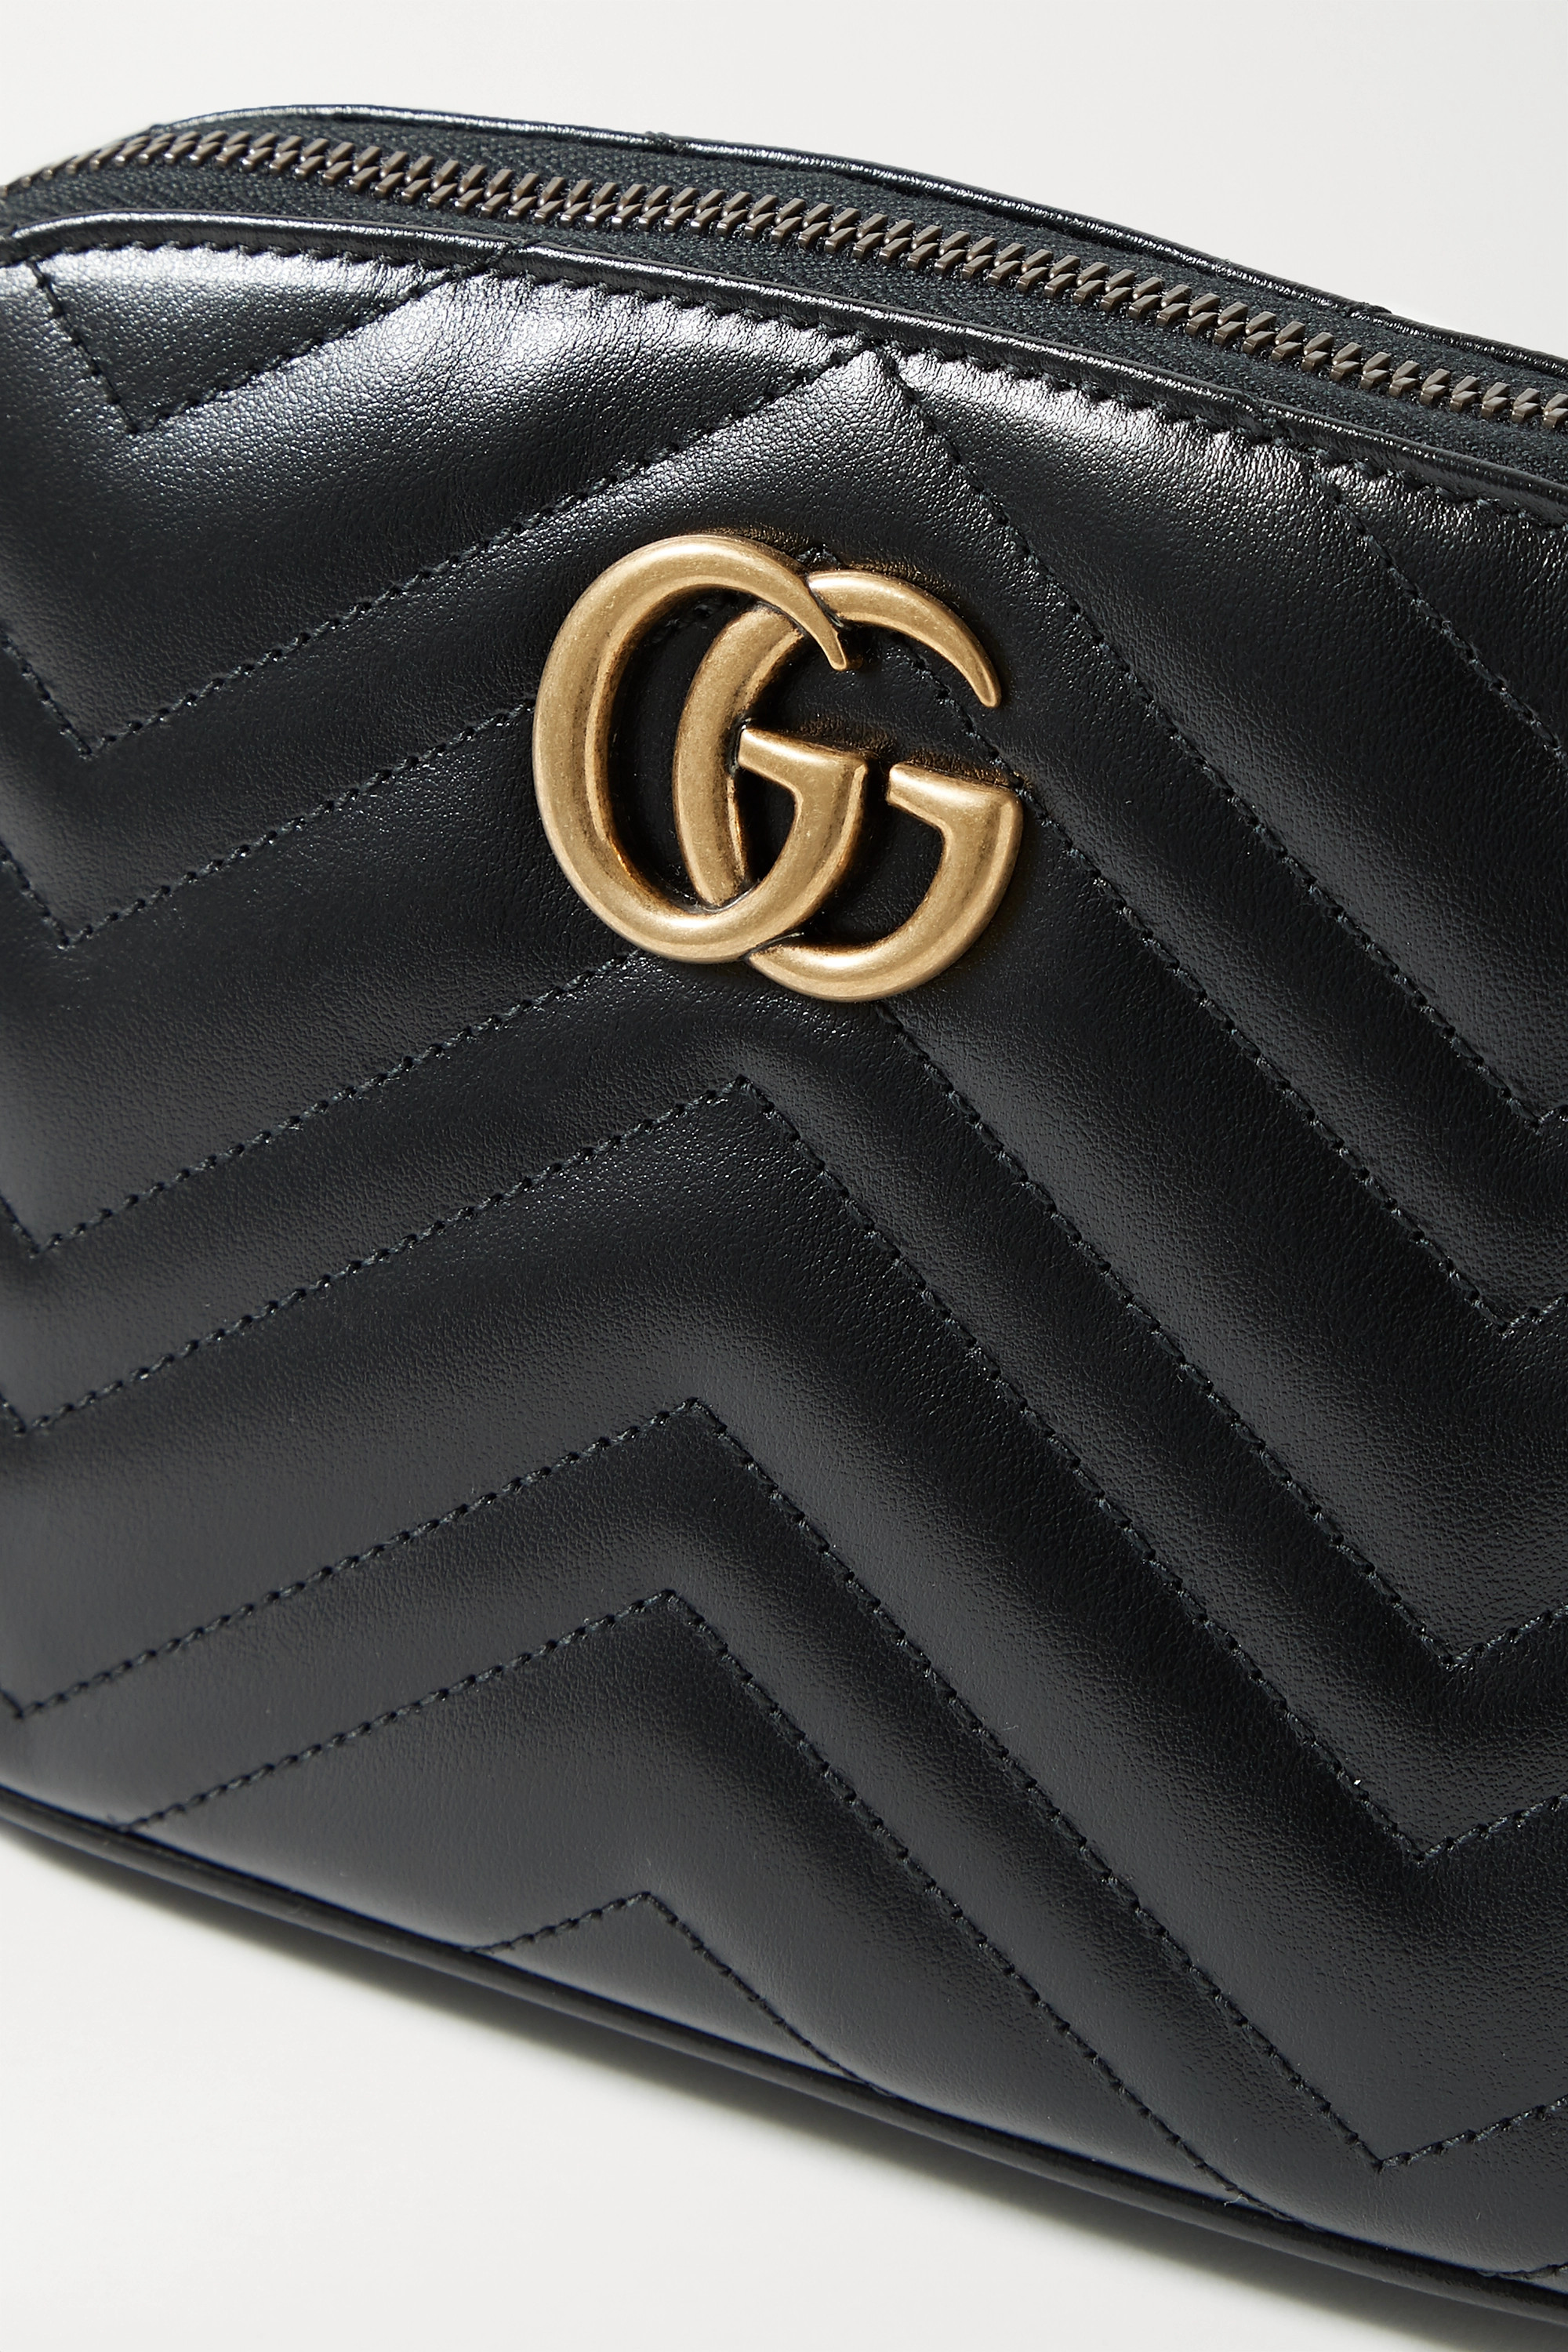 Gucci GG Marmont quilted leather cosmetics case